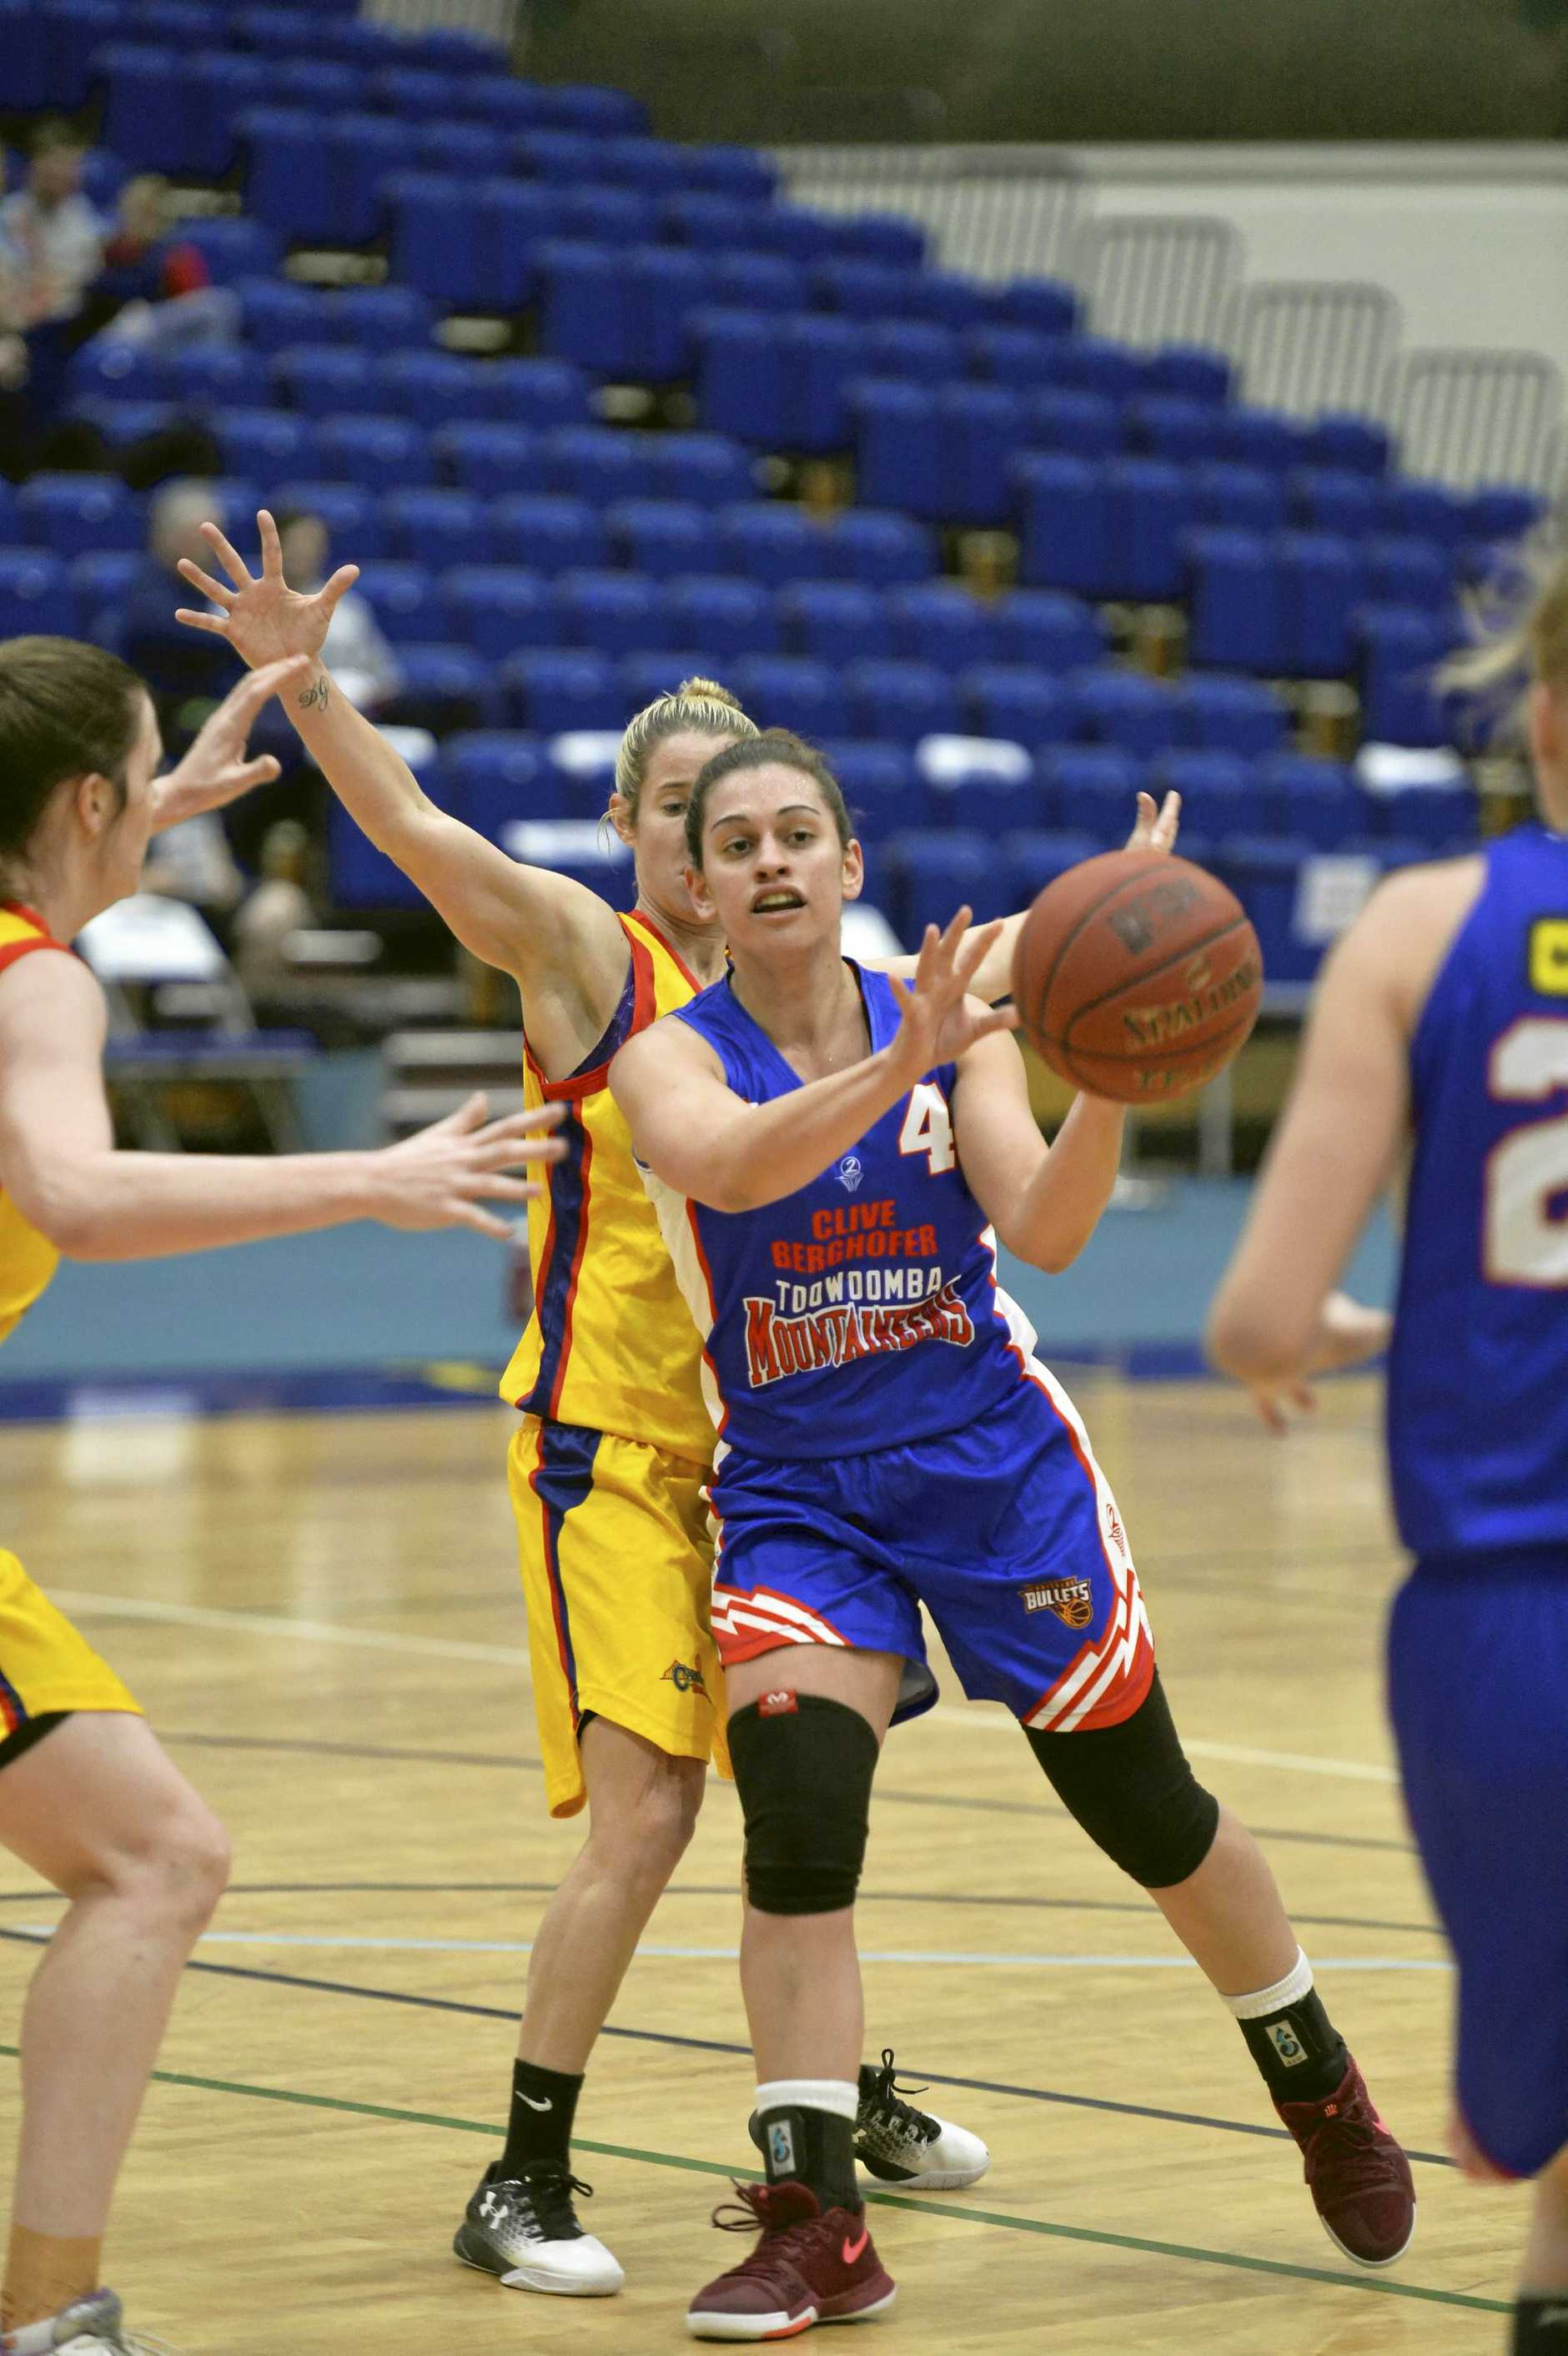 CLOSE CLASH: Toowoomba Mountaineers' Tracey Russell passes against Brisbane Capitals in QBL women's basketball at USQ's Clive Berghofer Recreation Centre.